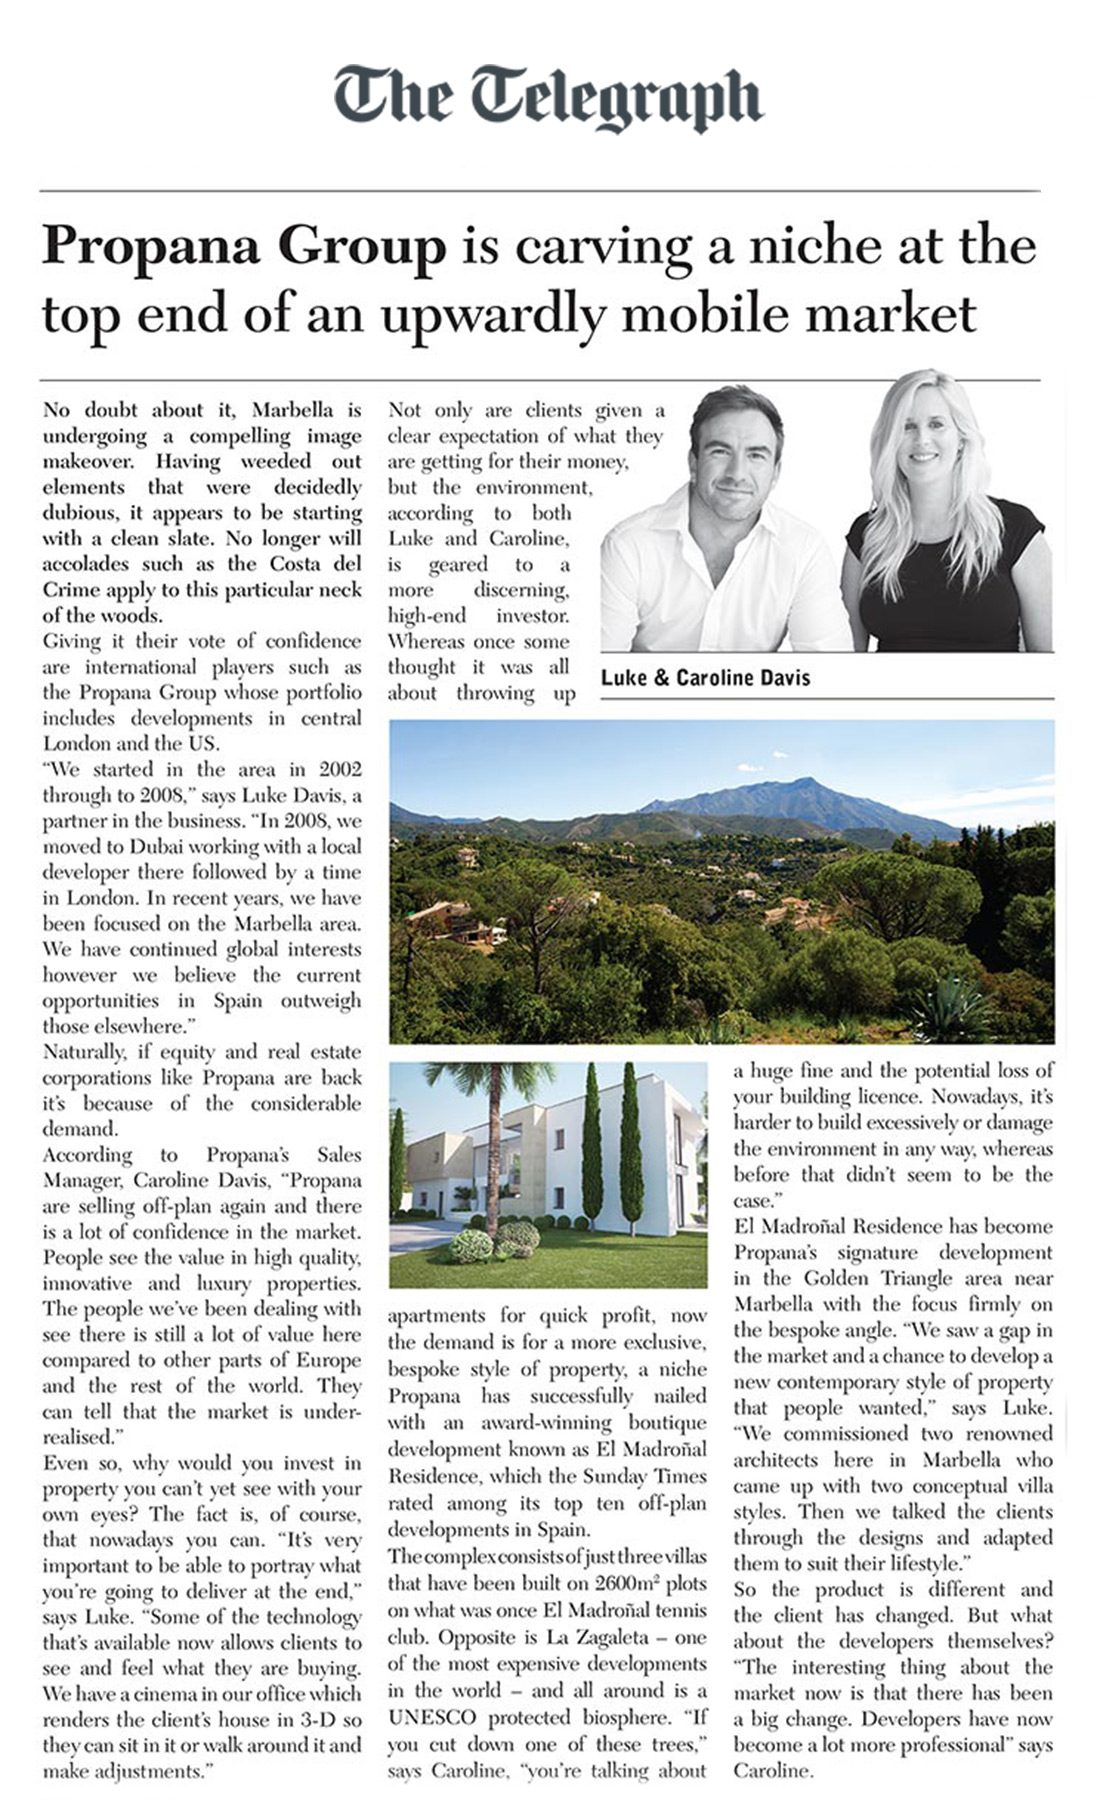 """Propana Group is carving a niche at the top end of an upwardly mobile market"" - The Daily Telegraph (July 2016)"